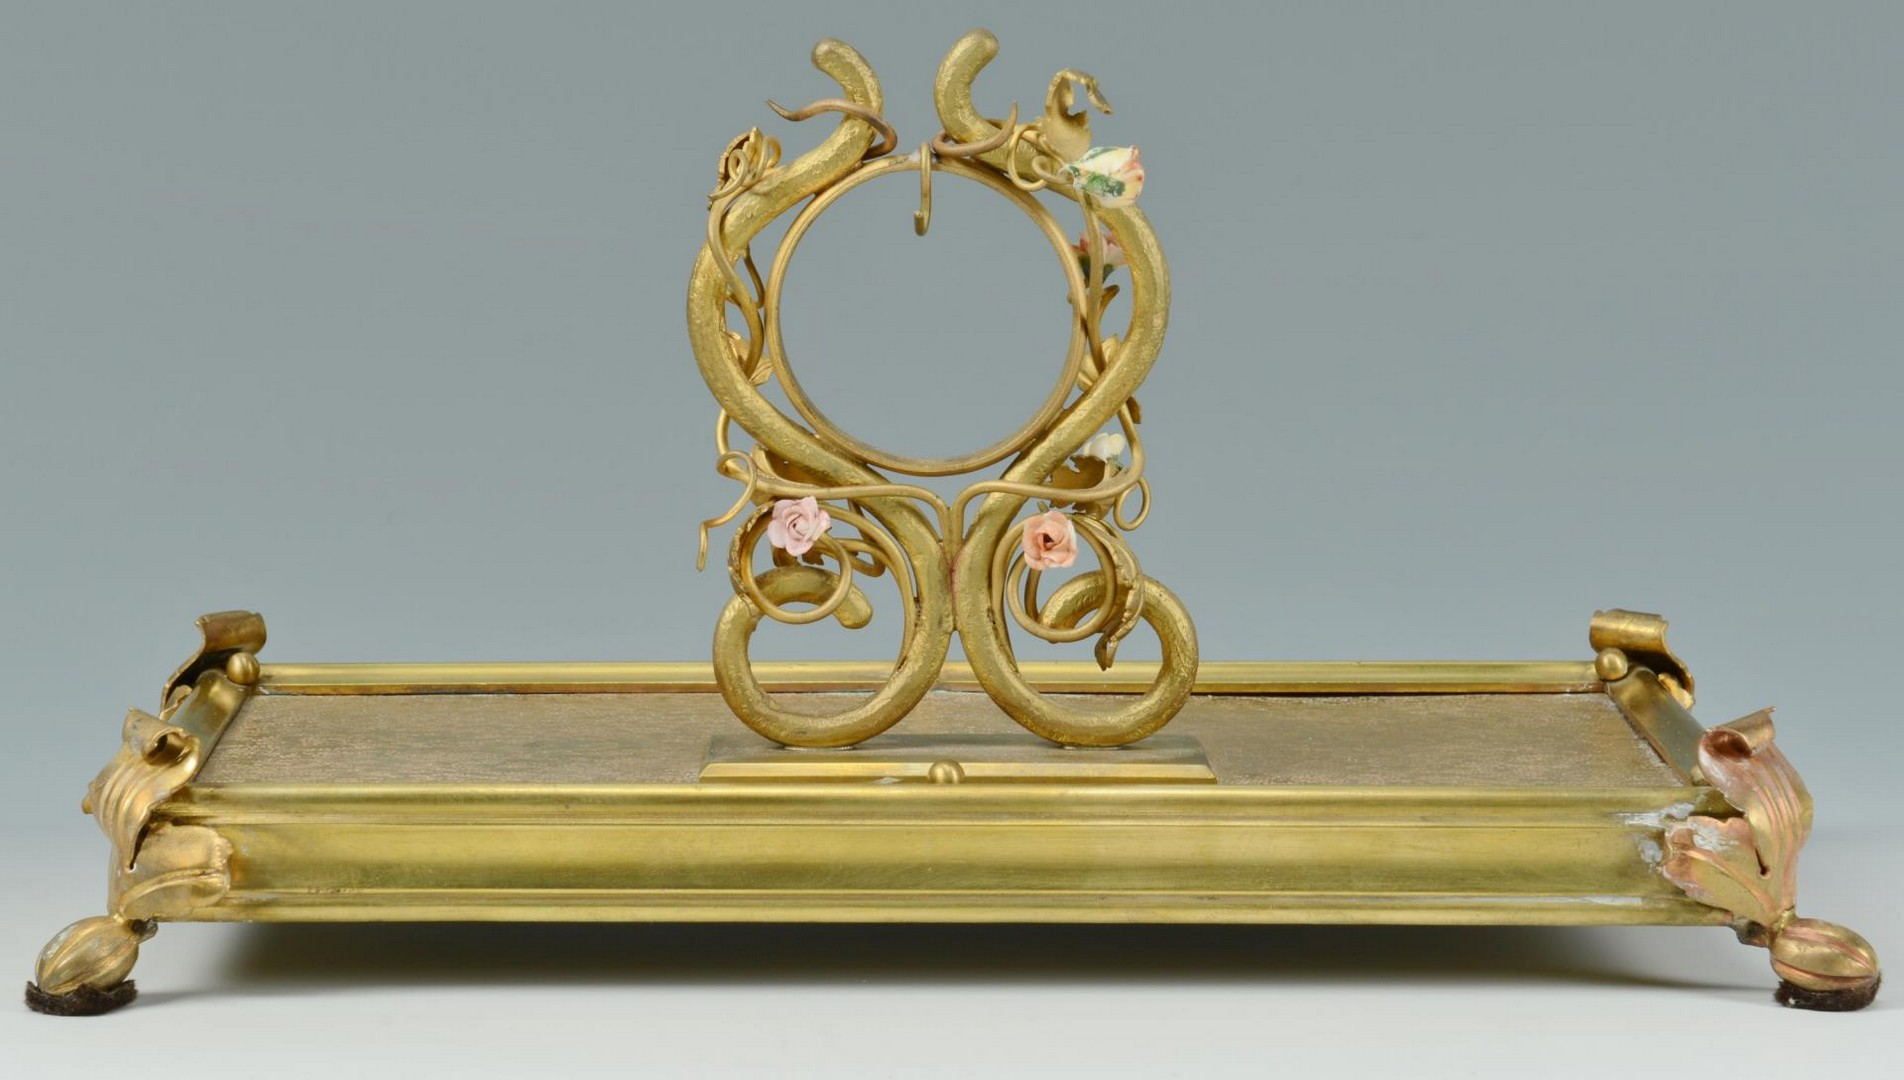 Lot 3383260: 2 Gilded Watch Holders